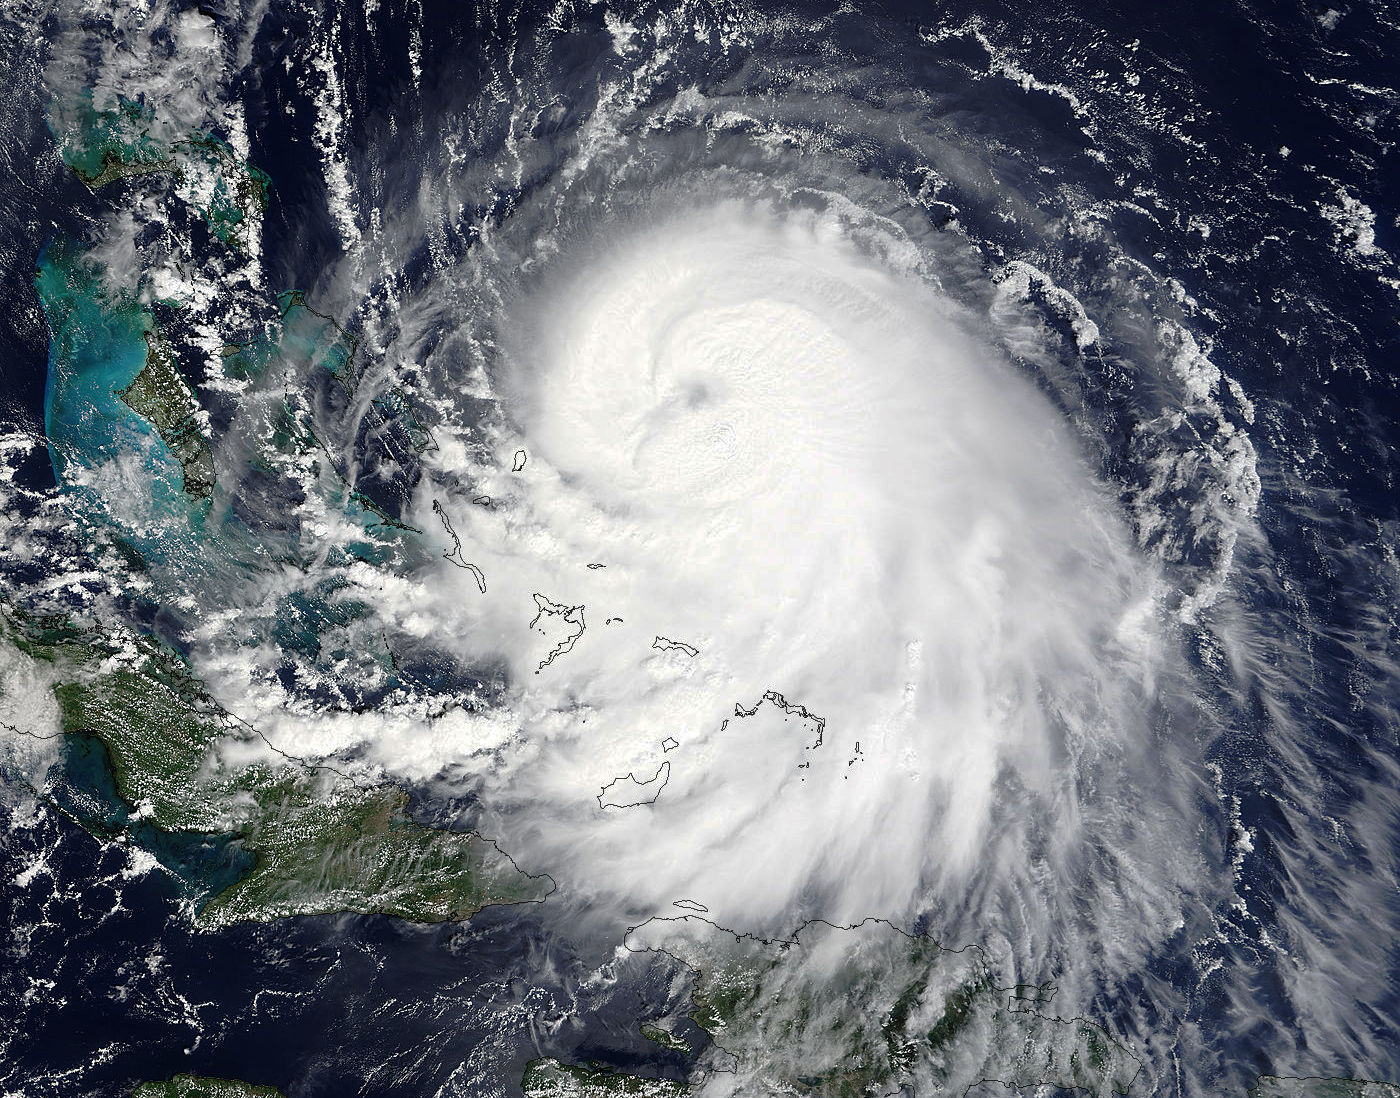 Words Of Wisdom On Hurricane Joaquin A Storm To Respect Natural Disasters Wisdom Nature